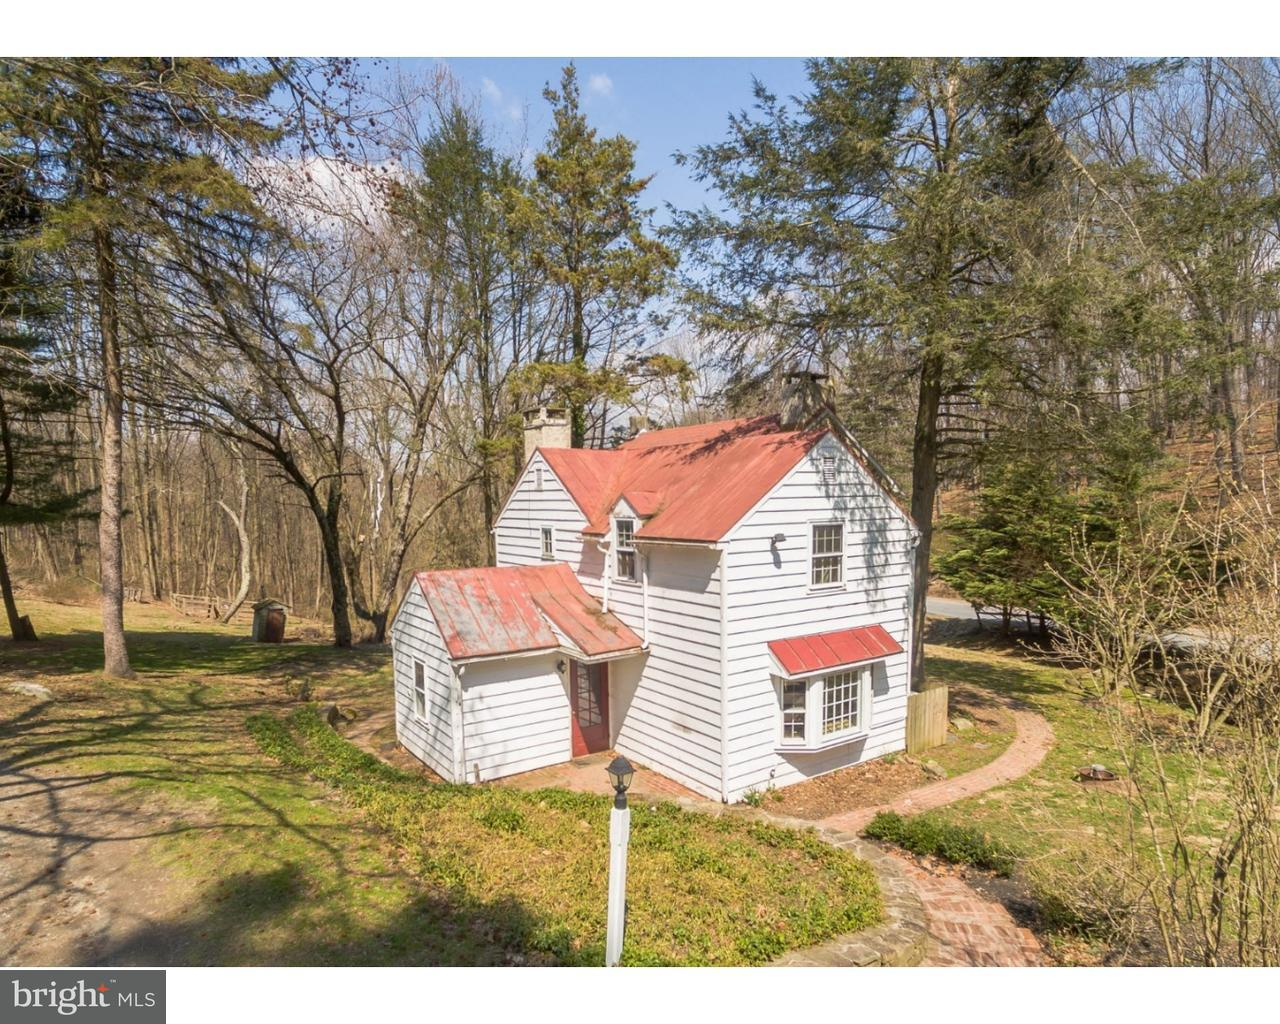 416 COUNTY PARK RD, POTTSTOWN - Listed at $585,000, POTTSTOWN